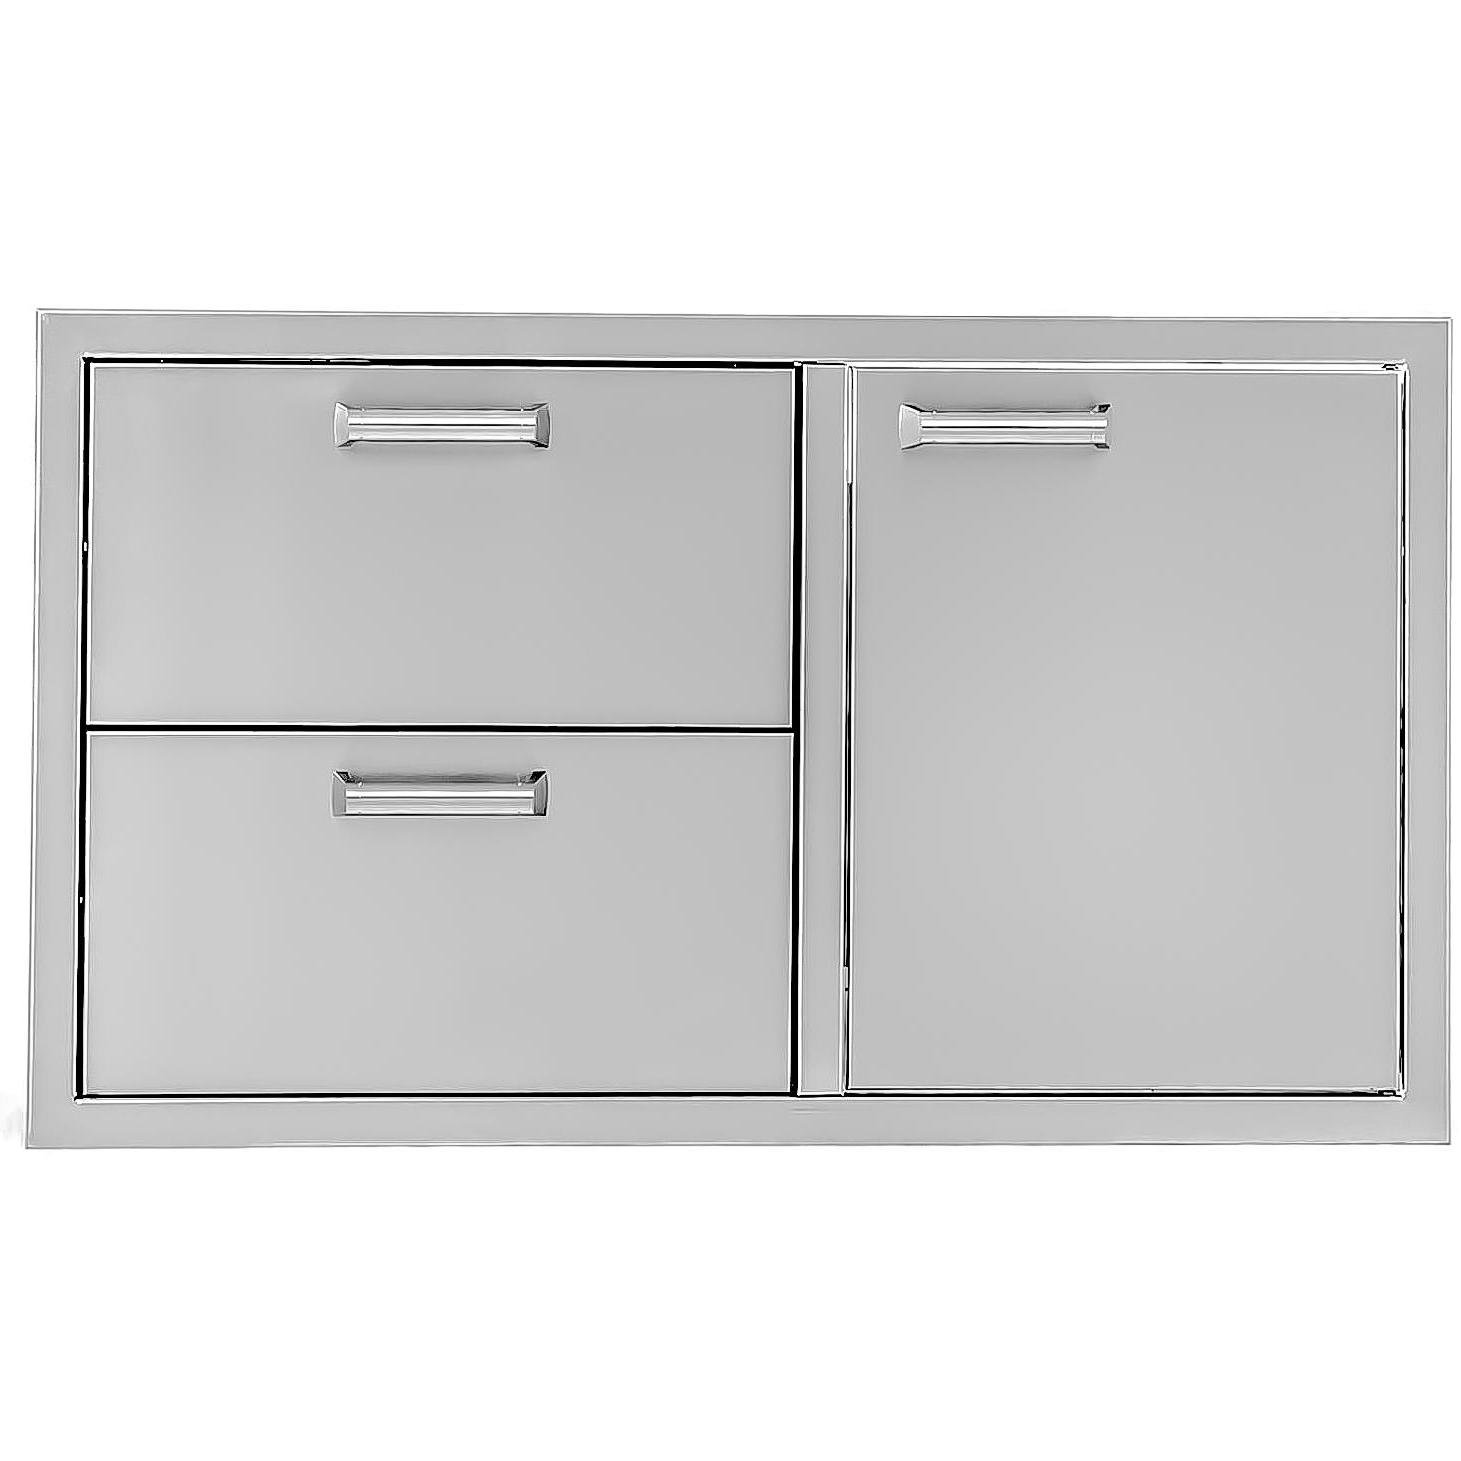 BBQGuys.com Sonoma Series 36-inch Stainless Steel Right-hinged Access Door & Double Drawer Combo